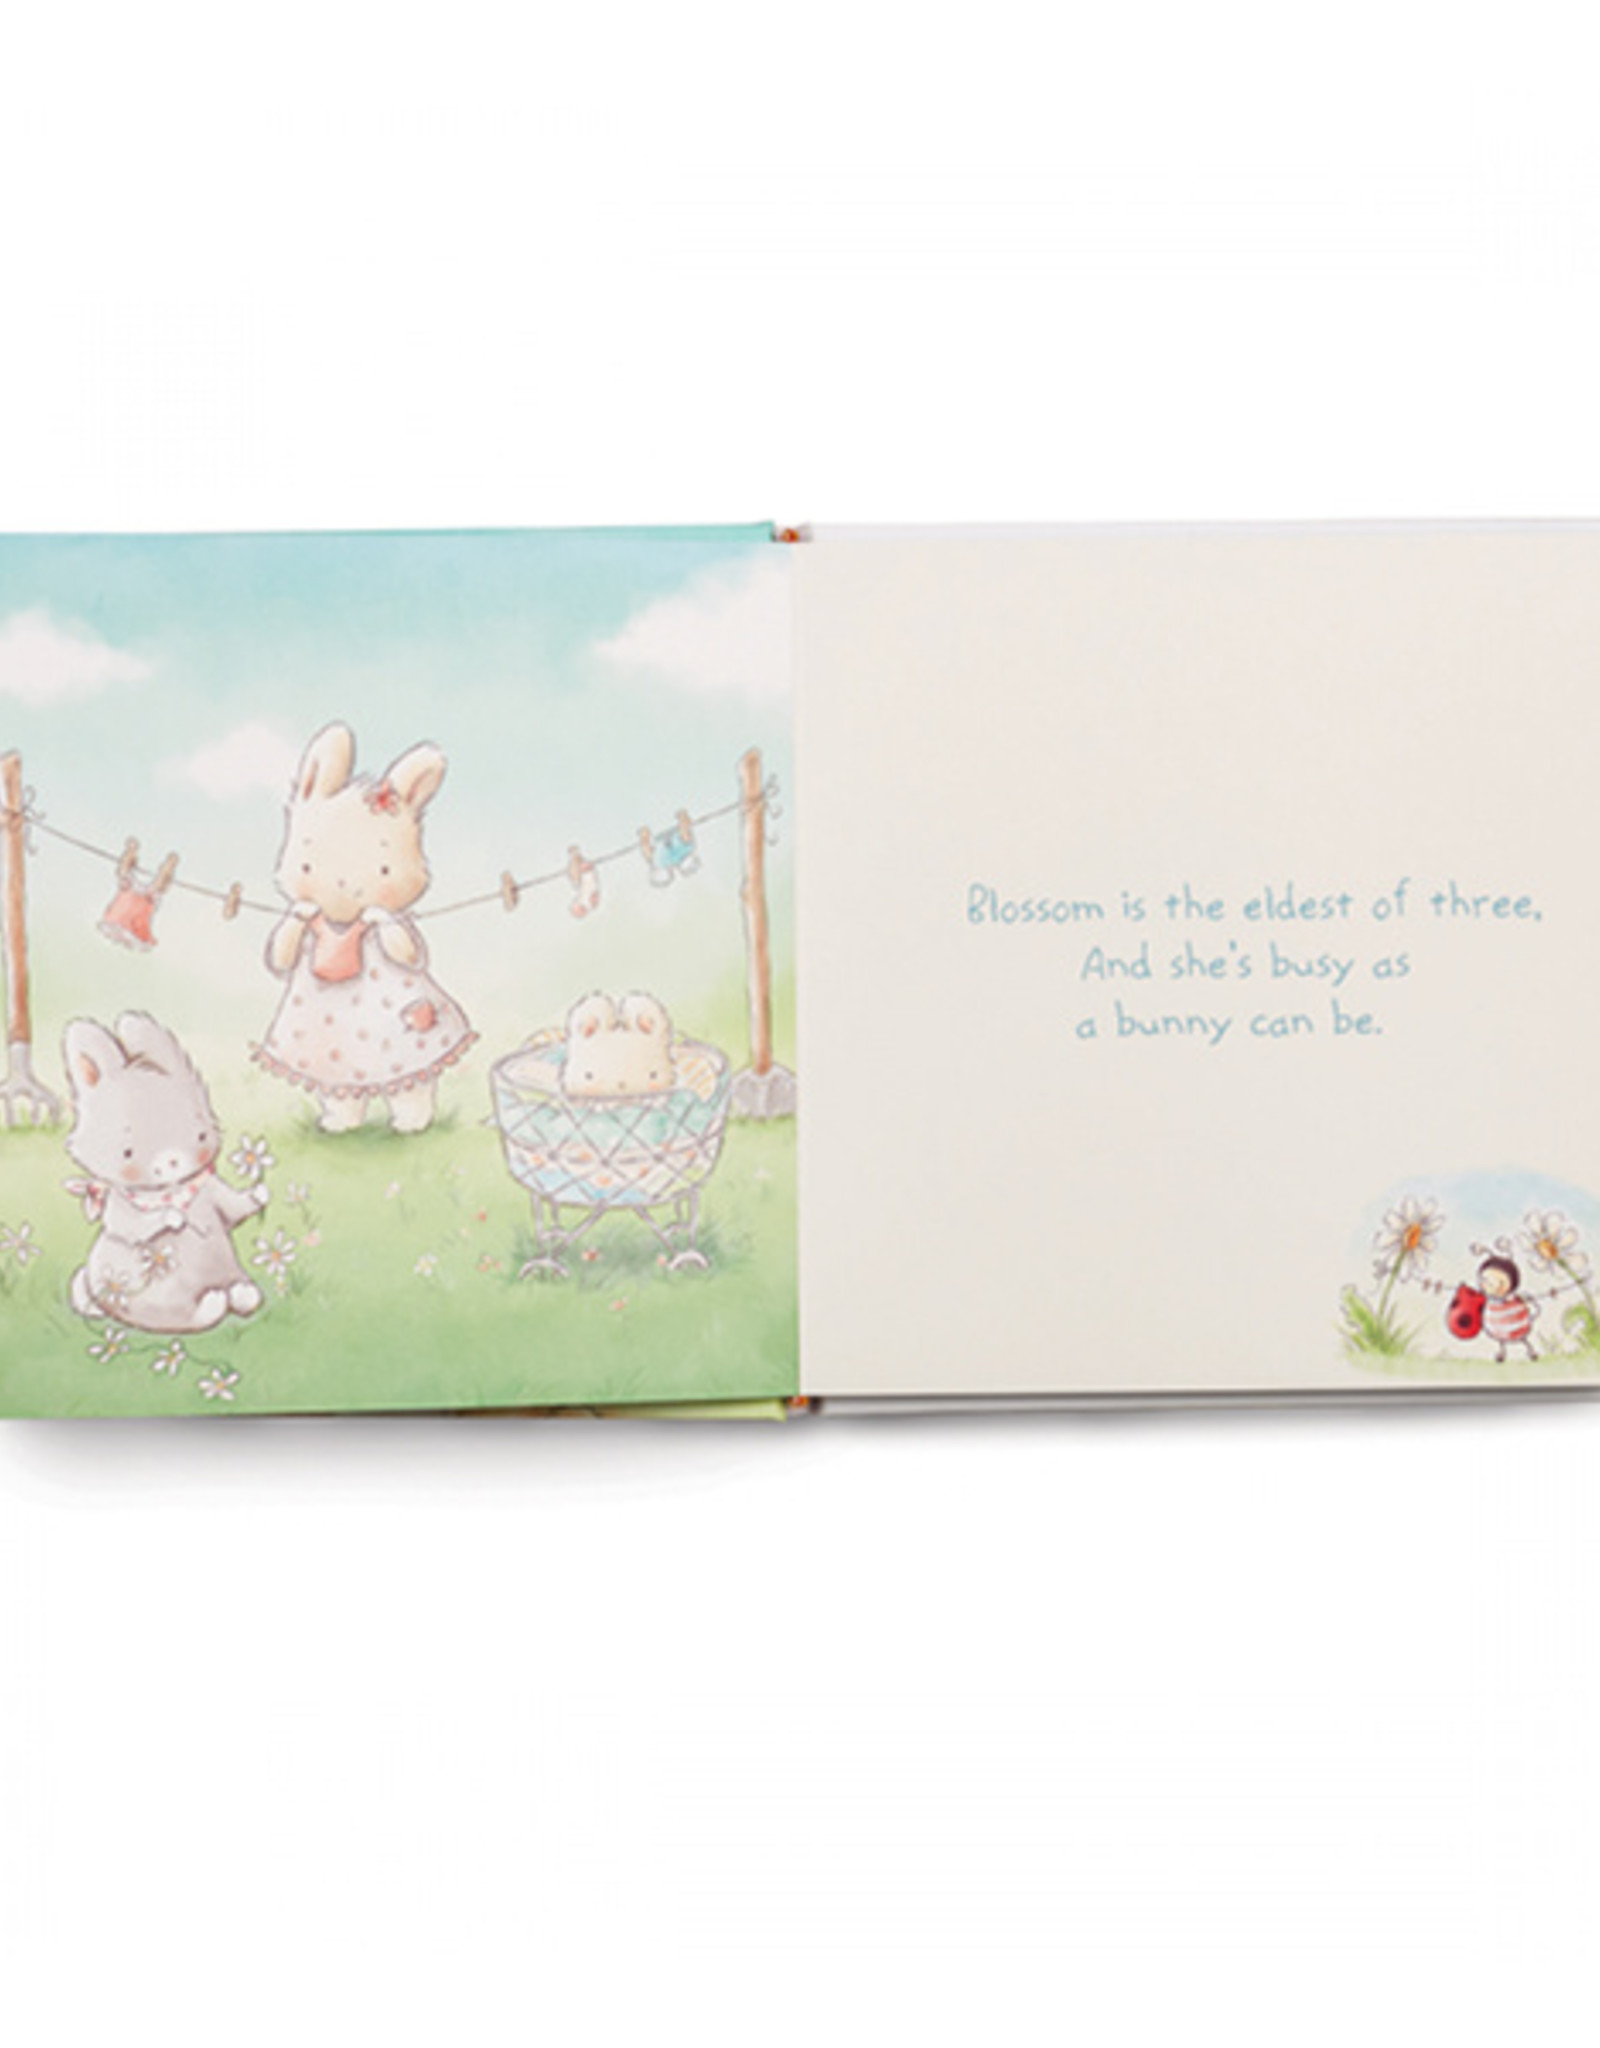 Bunnies By The Bay Book: Friendship Blossoms